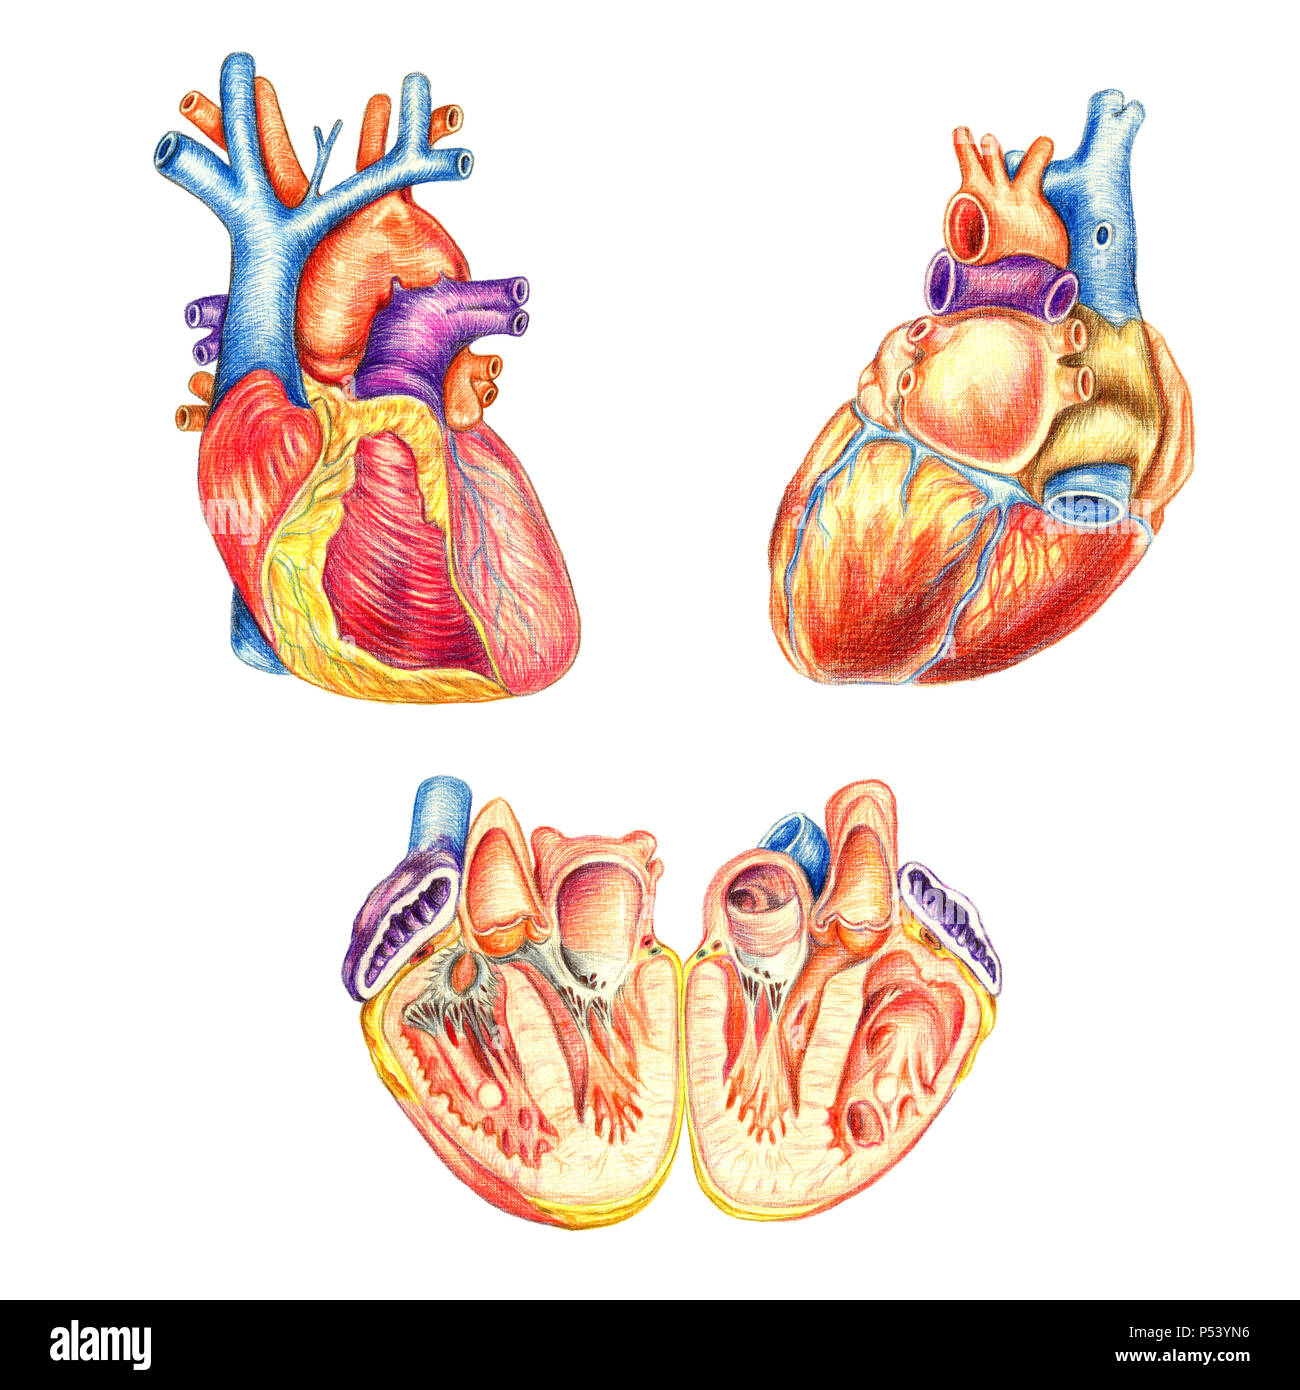 The human heart viewed from the front, behind and lengthwise cut, hand drawn medical illustration, color pencils drawing with imitation of lithography - Stock Image